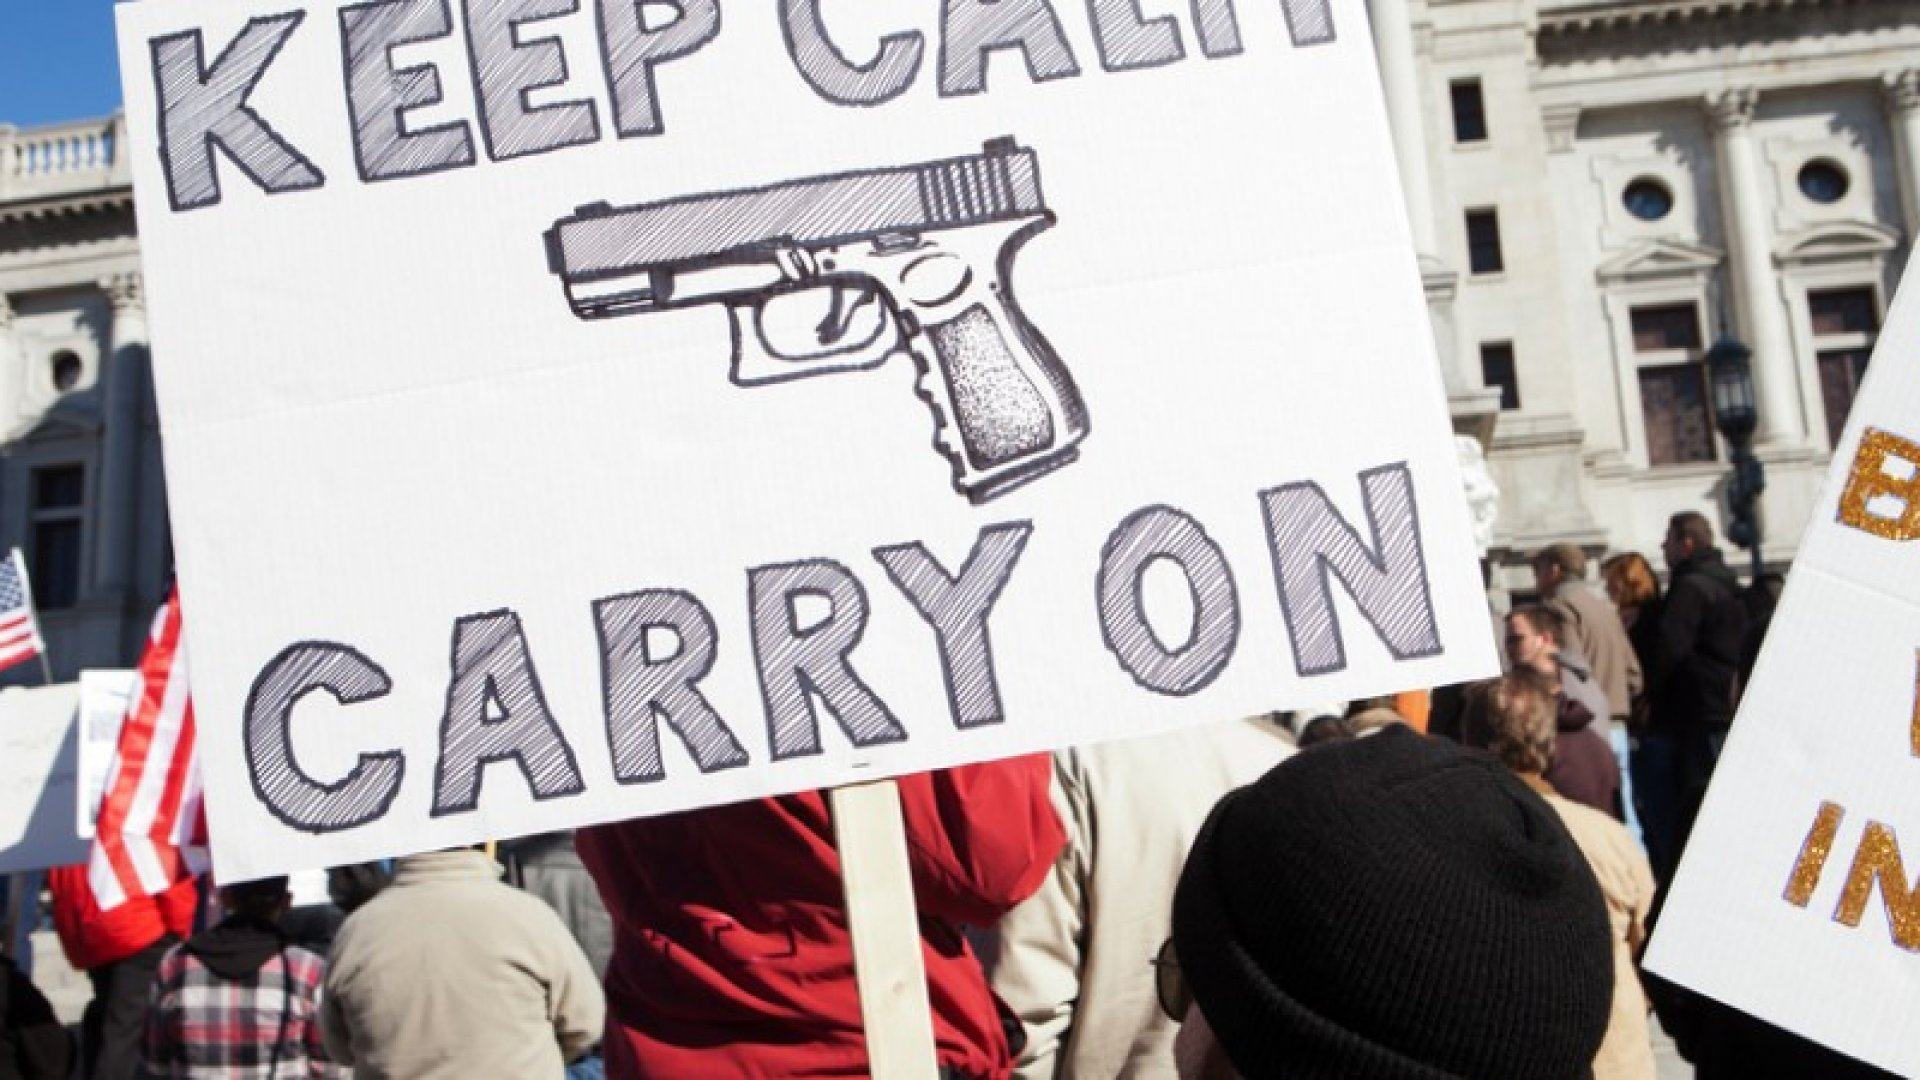 A Customer Walks Into Your Store With a Gun. Now What?